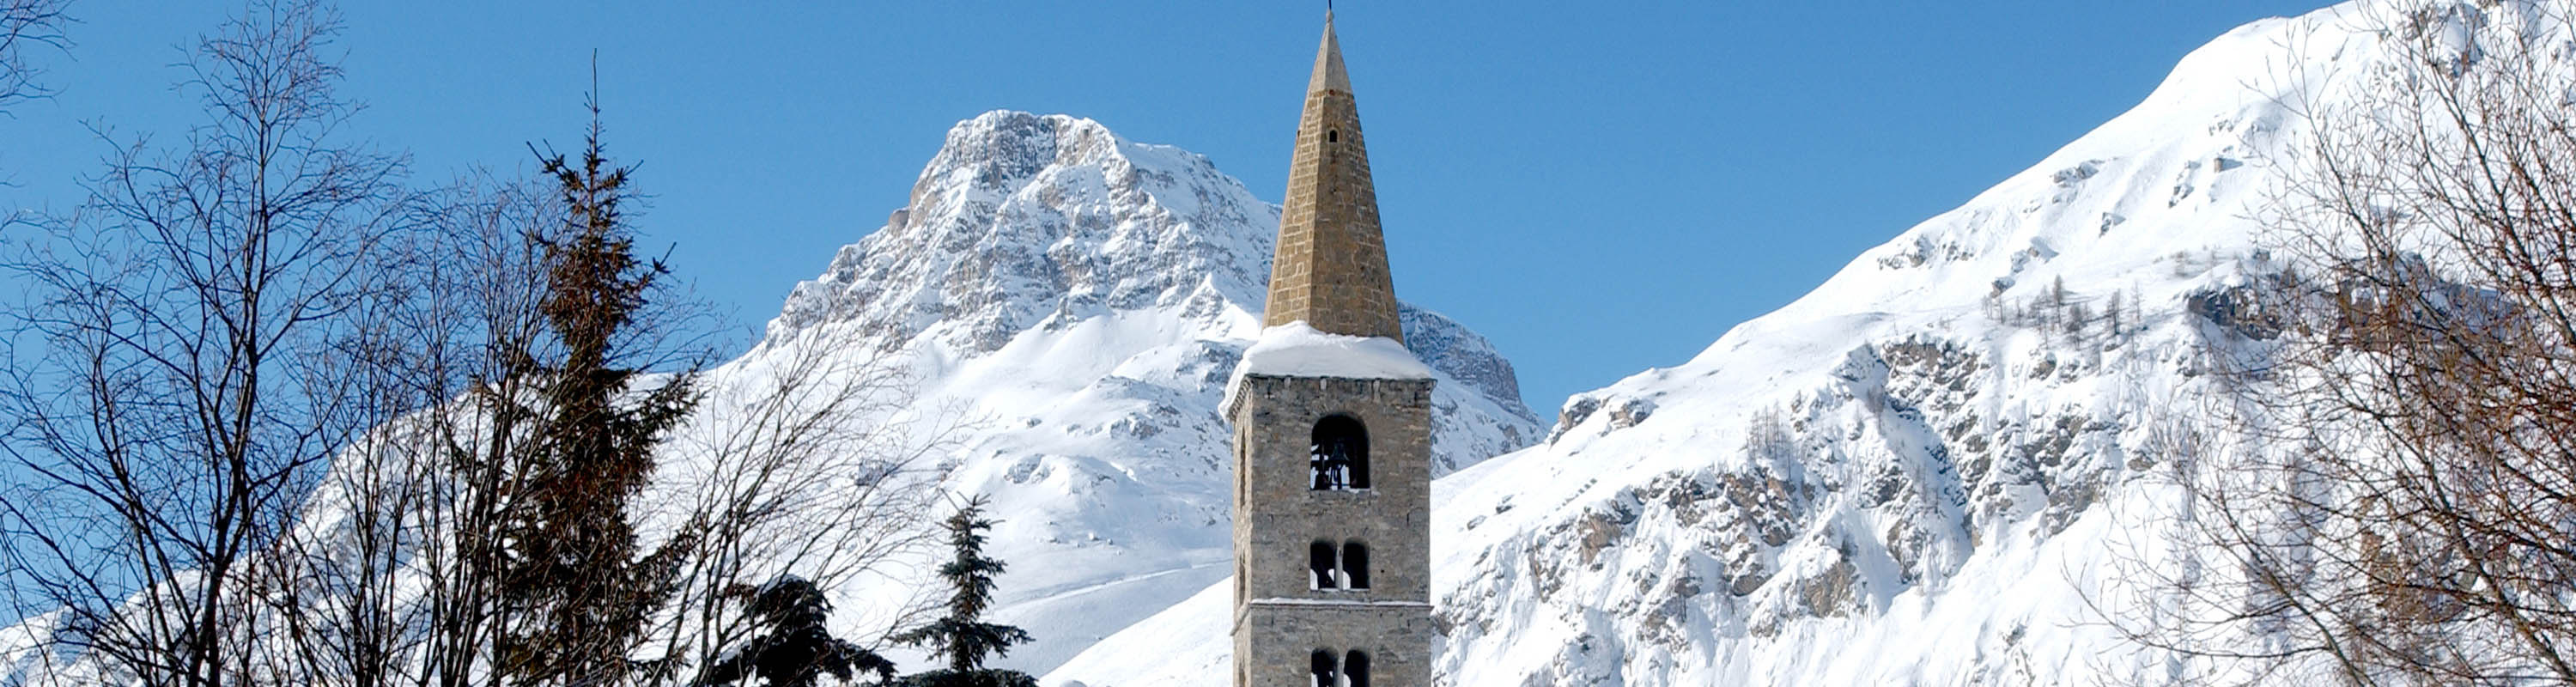 Val d'Isere church